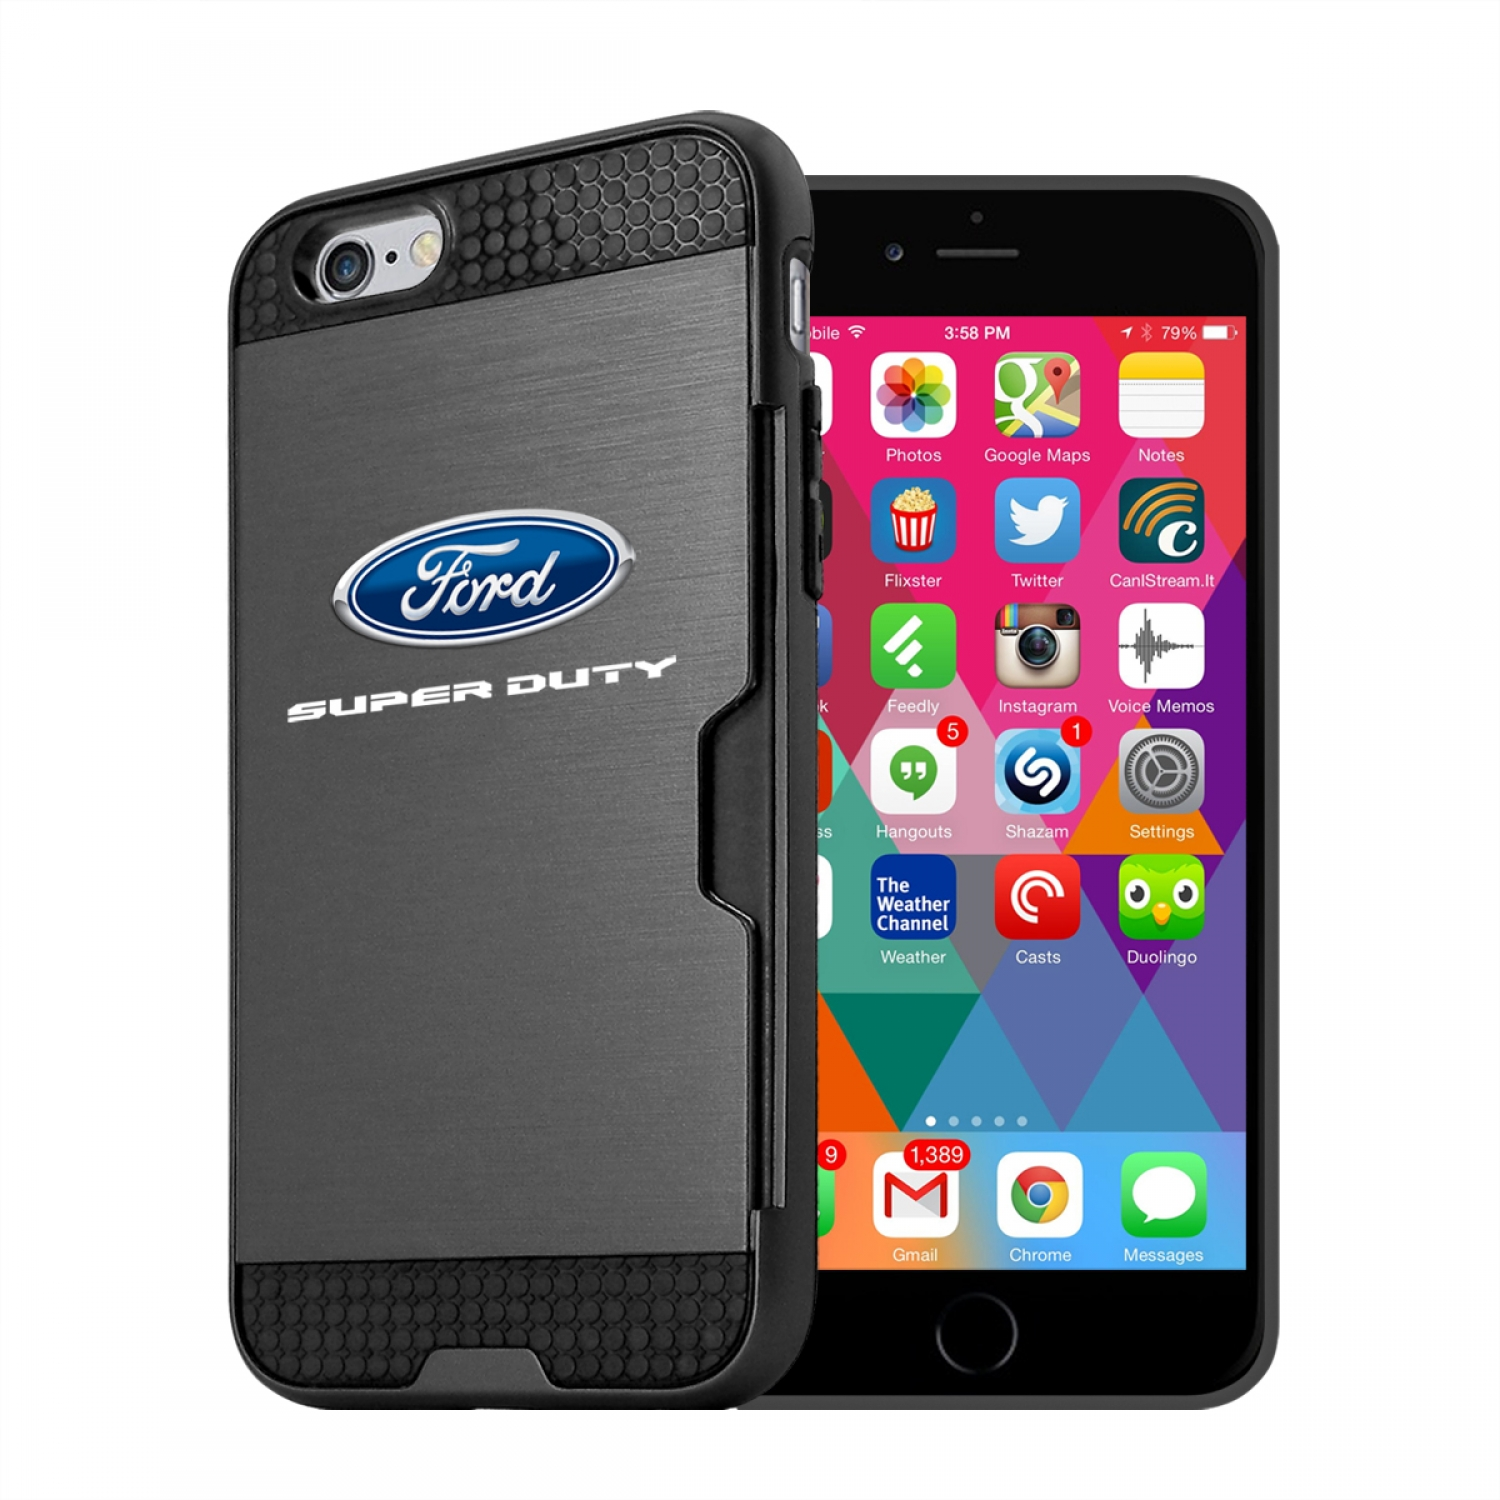 Ford Super Duty iPhone 6 6s Ultra Thin TPU Black Phone Case with Credit Card Slot Wallet